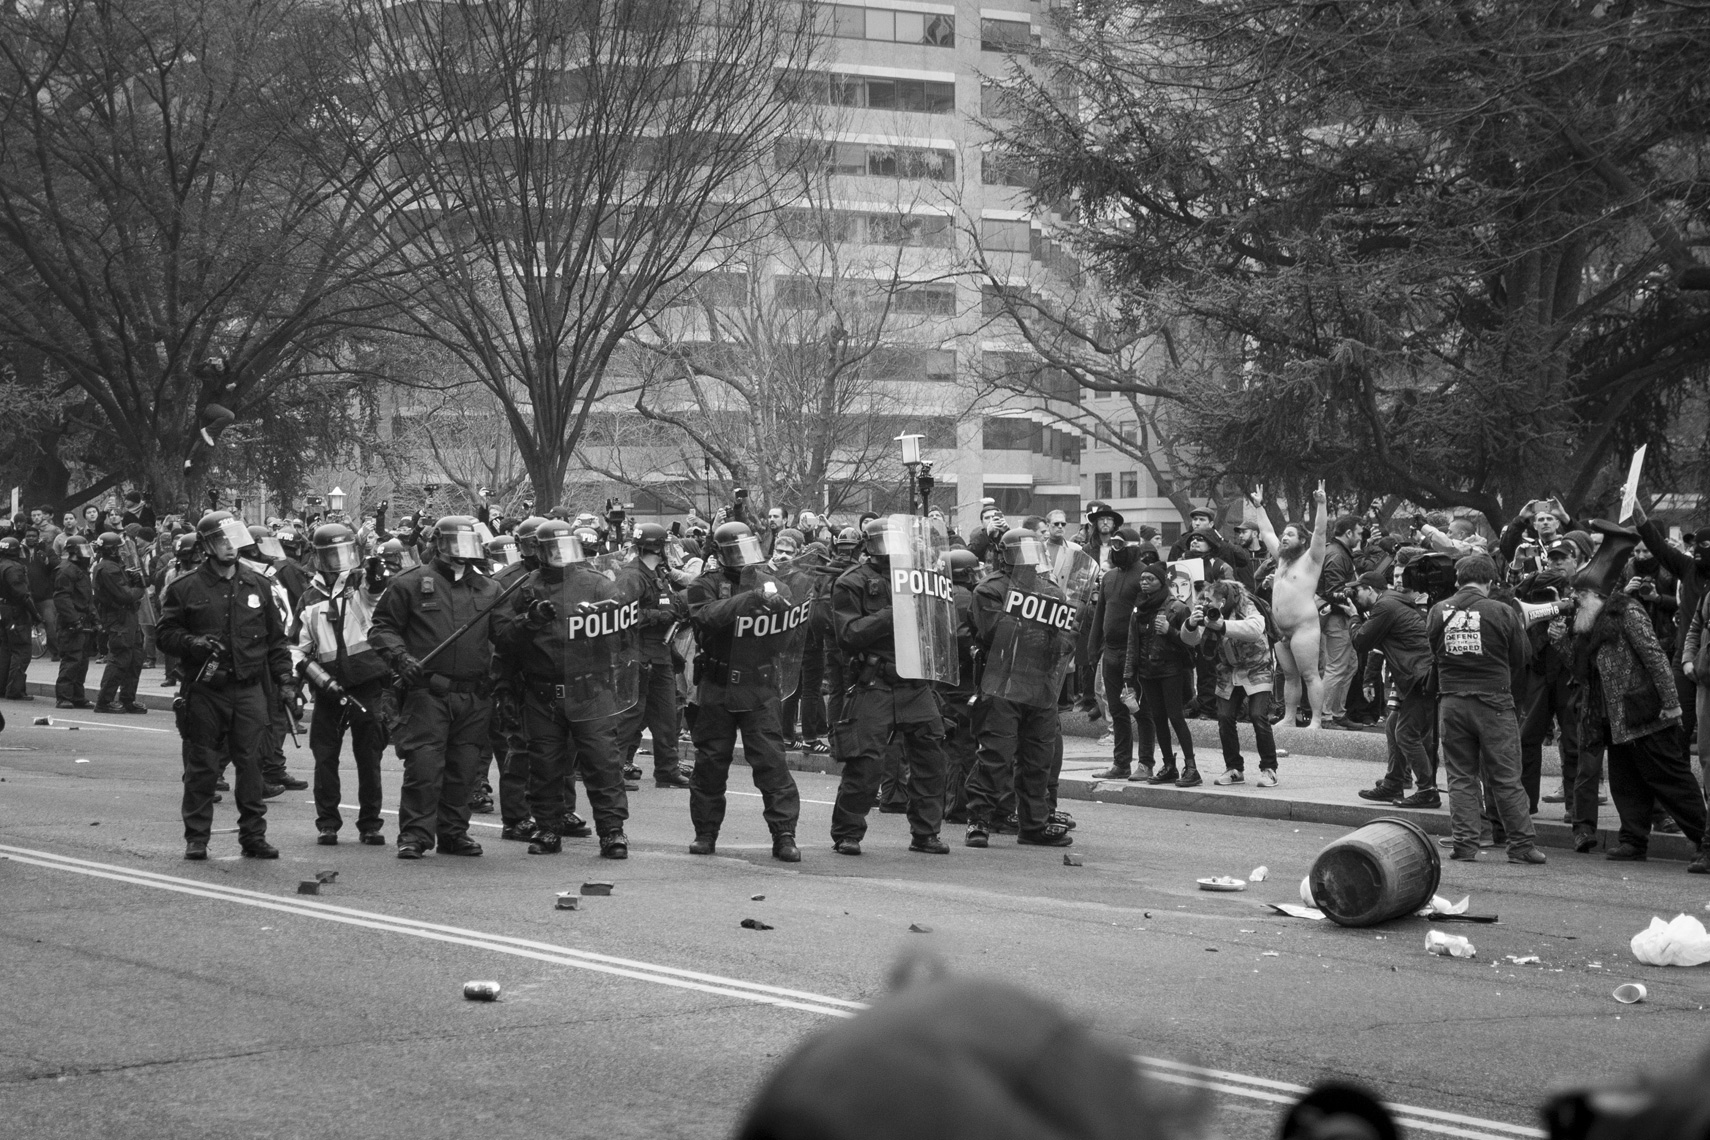 GM_Washington-Inauguration-Day-Protests012017_11008786